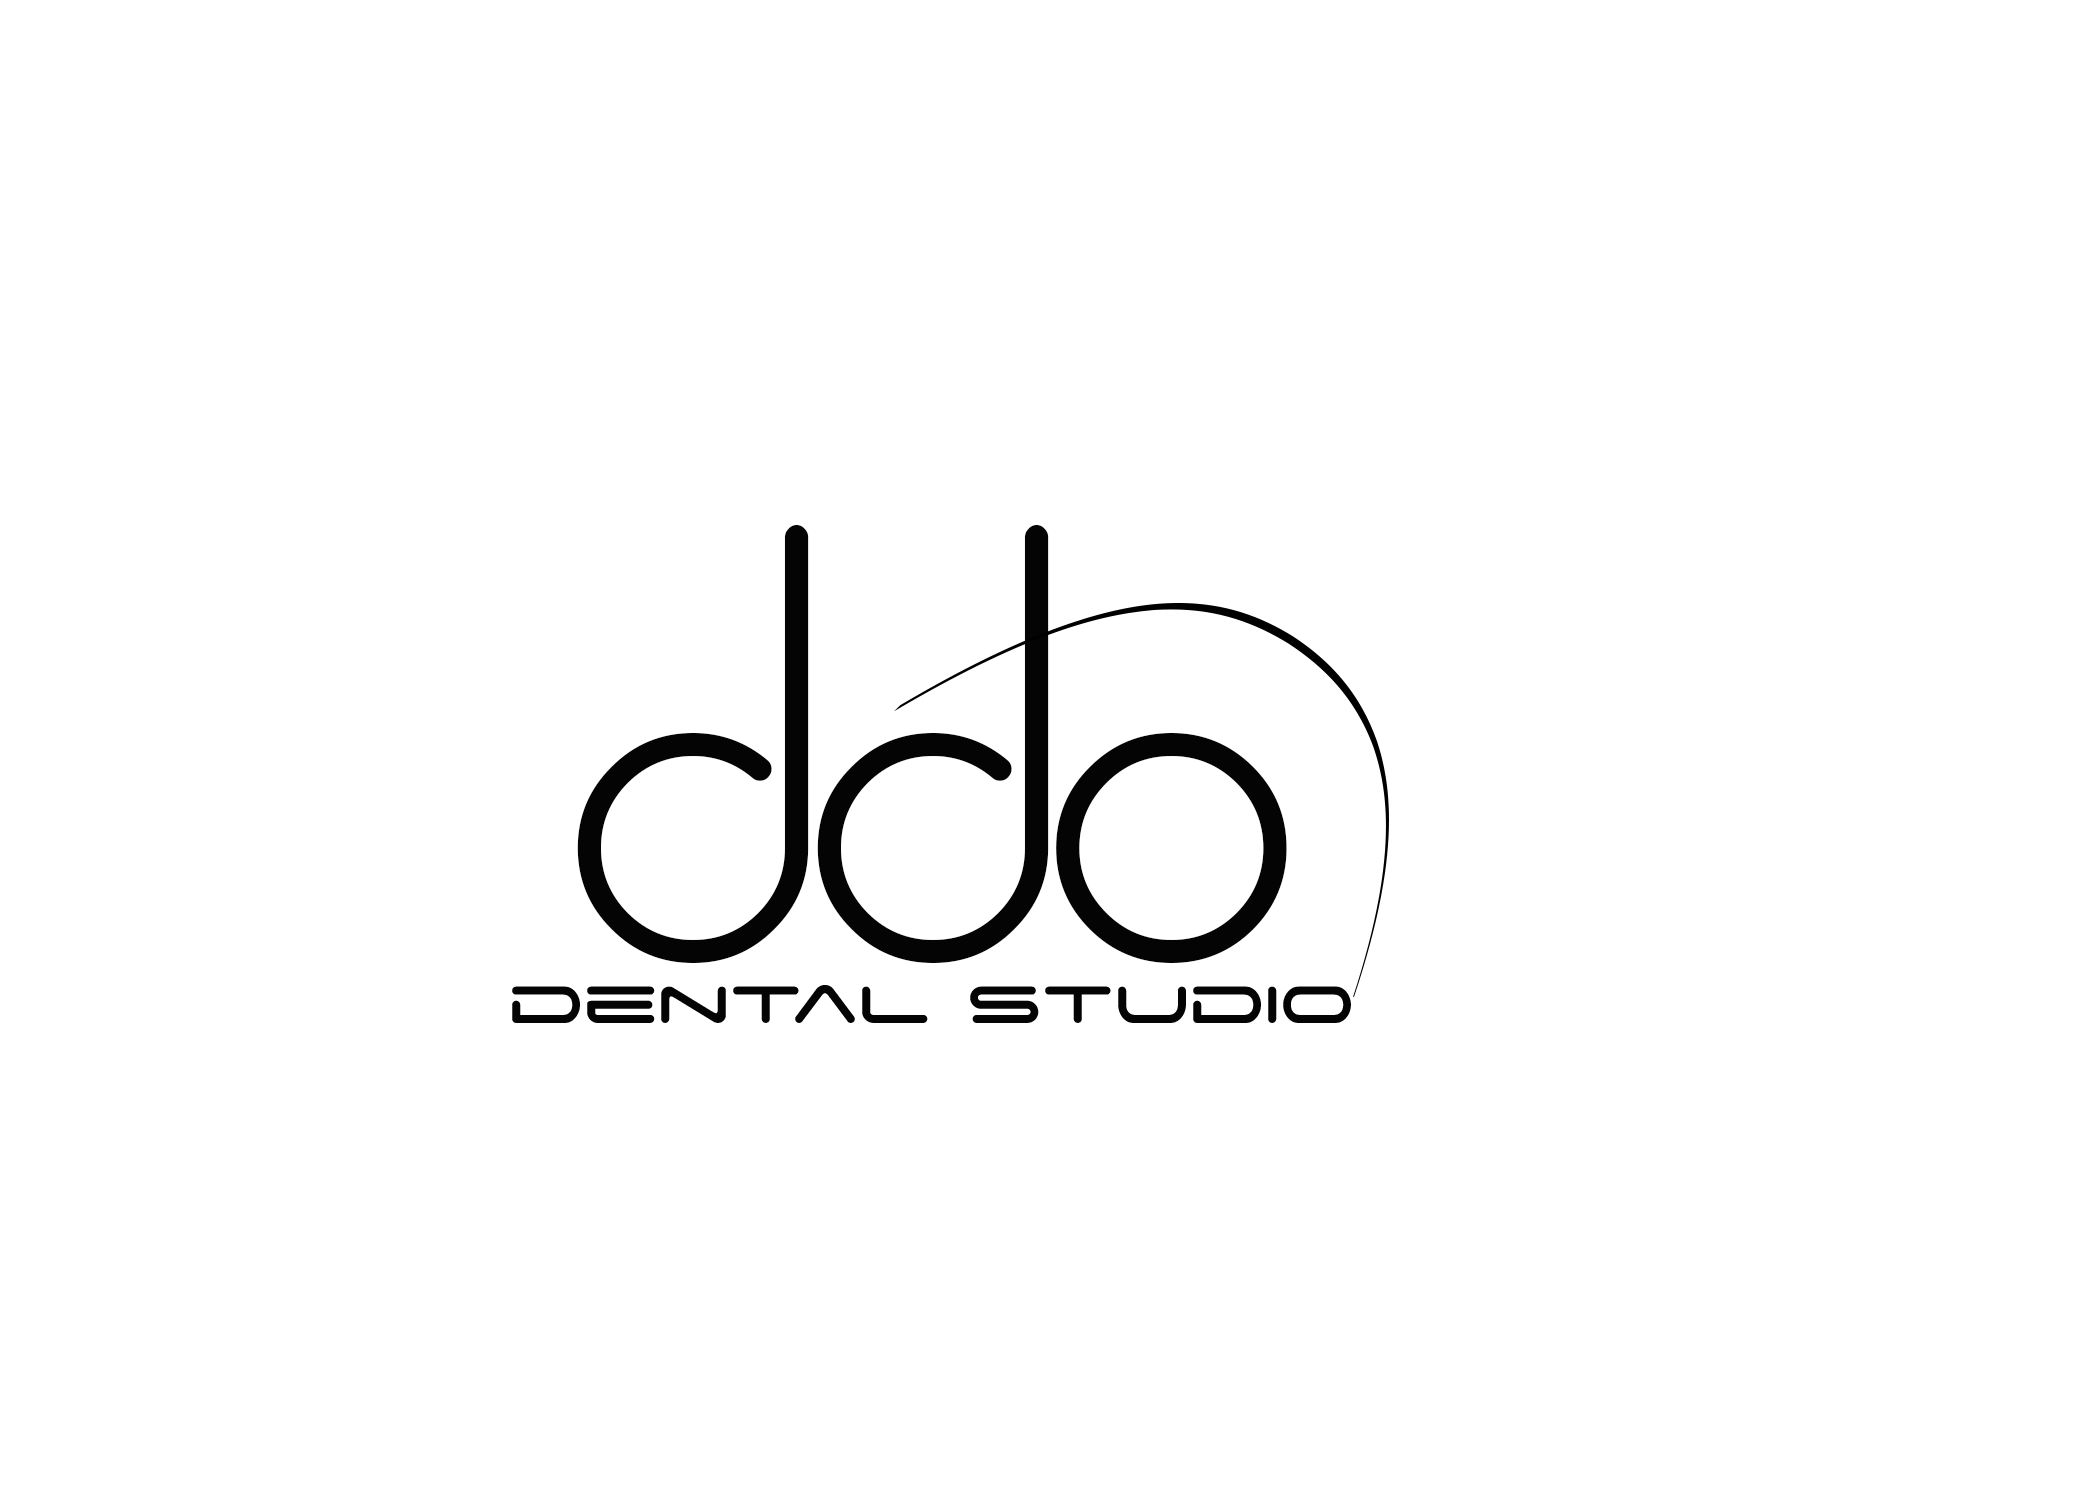 DDO Dental Studio poza